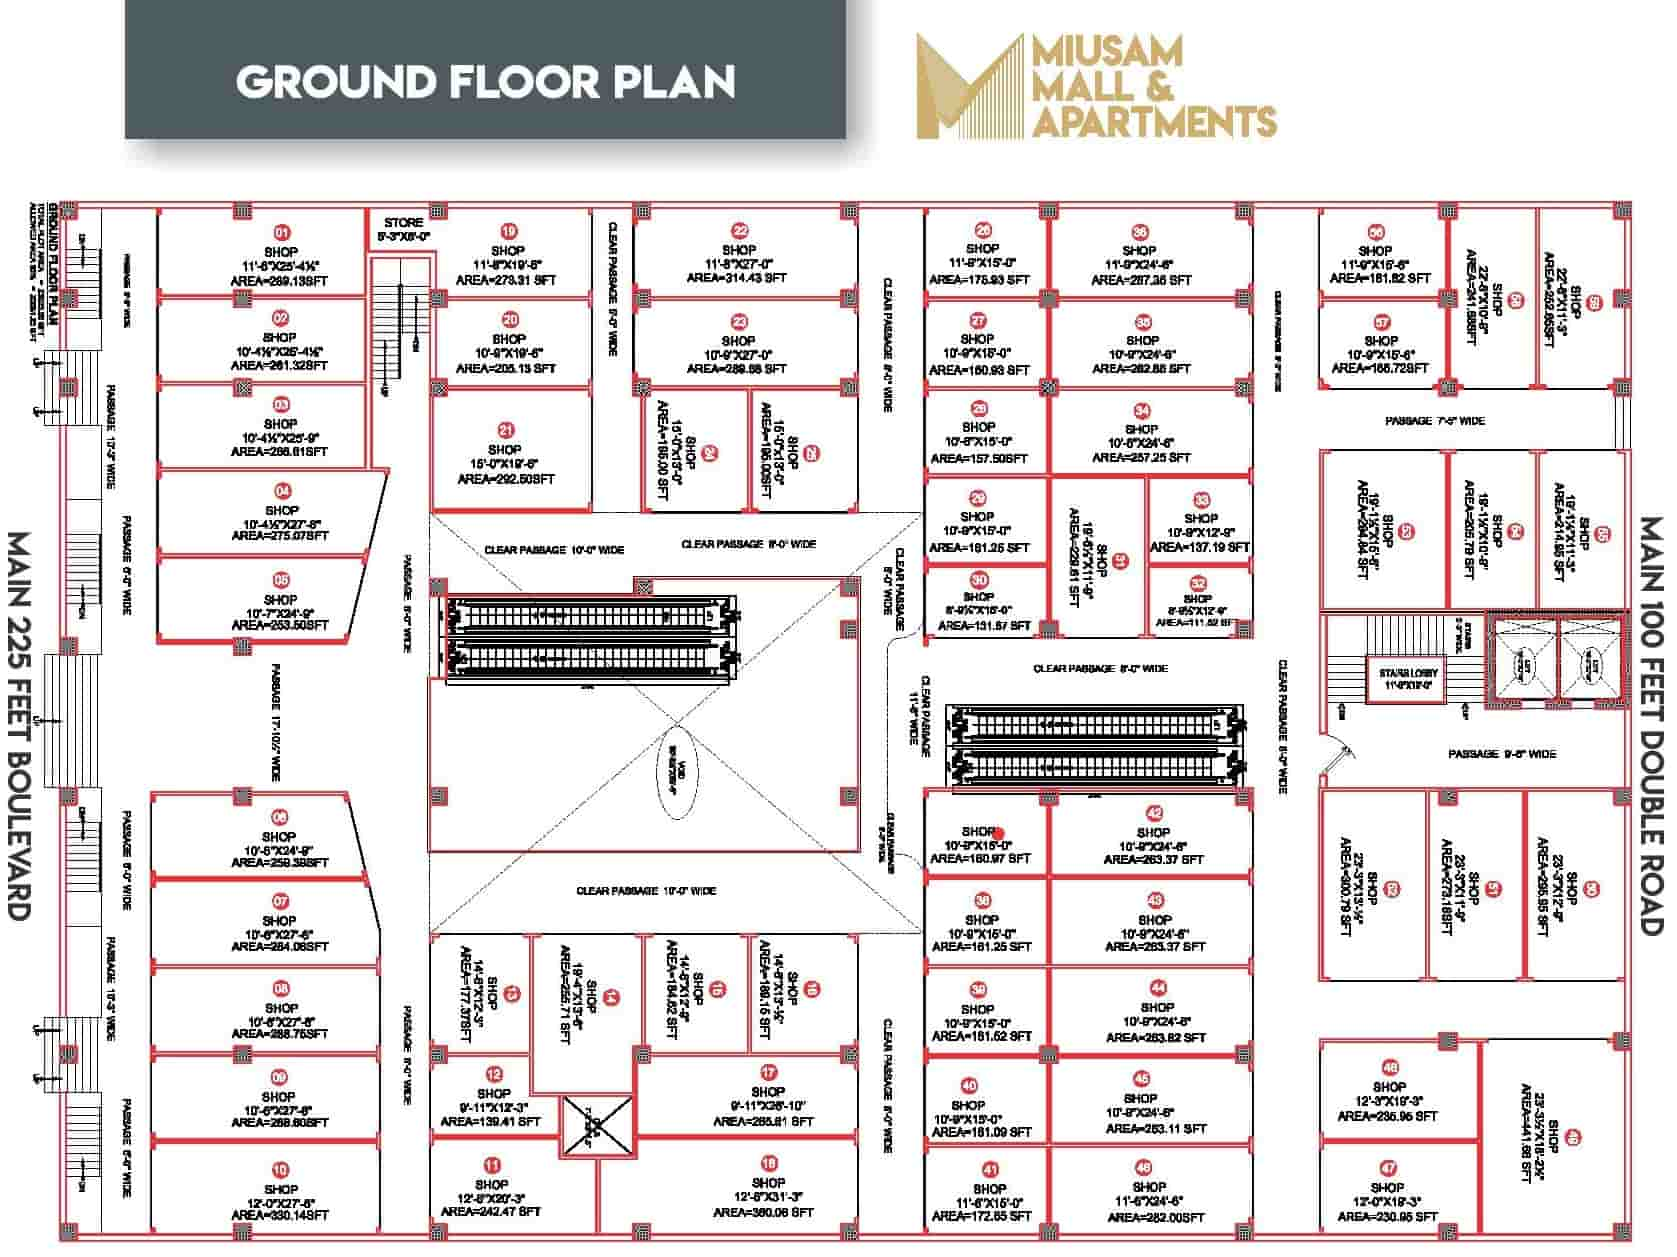 Miusam Mall Ground Floor Plan-min